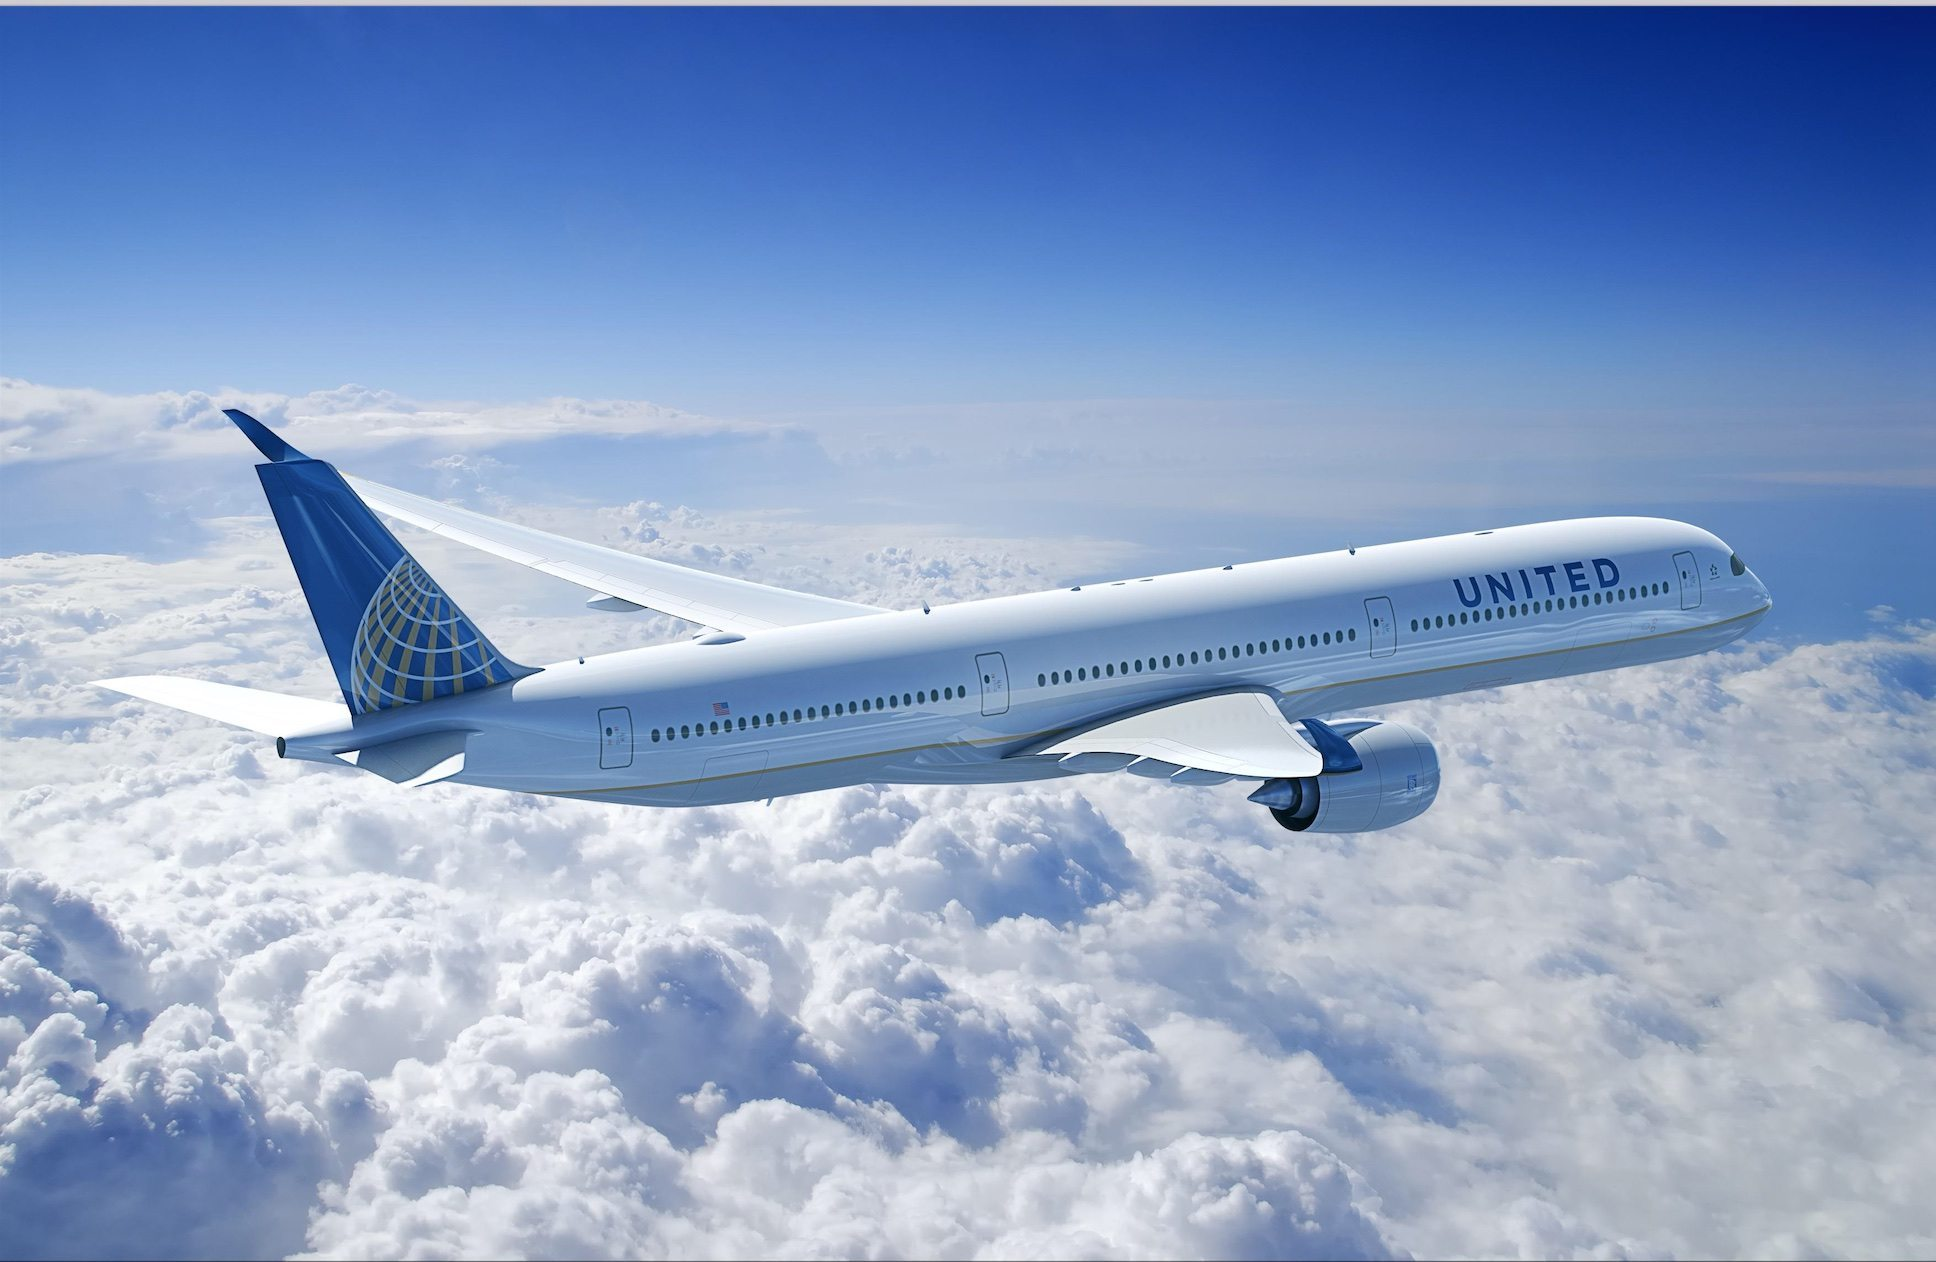 United Airlines start dates and ticket availability for new nonstop service to Bangalore, New Delhi and Johannesburg